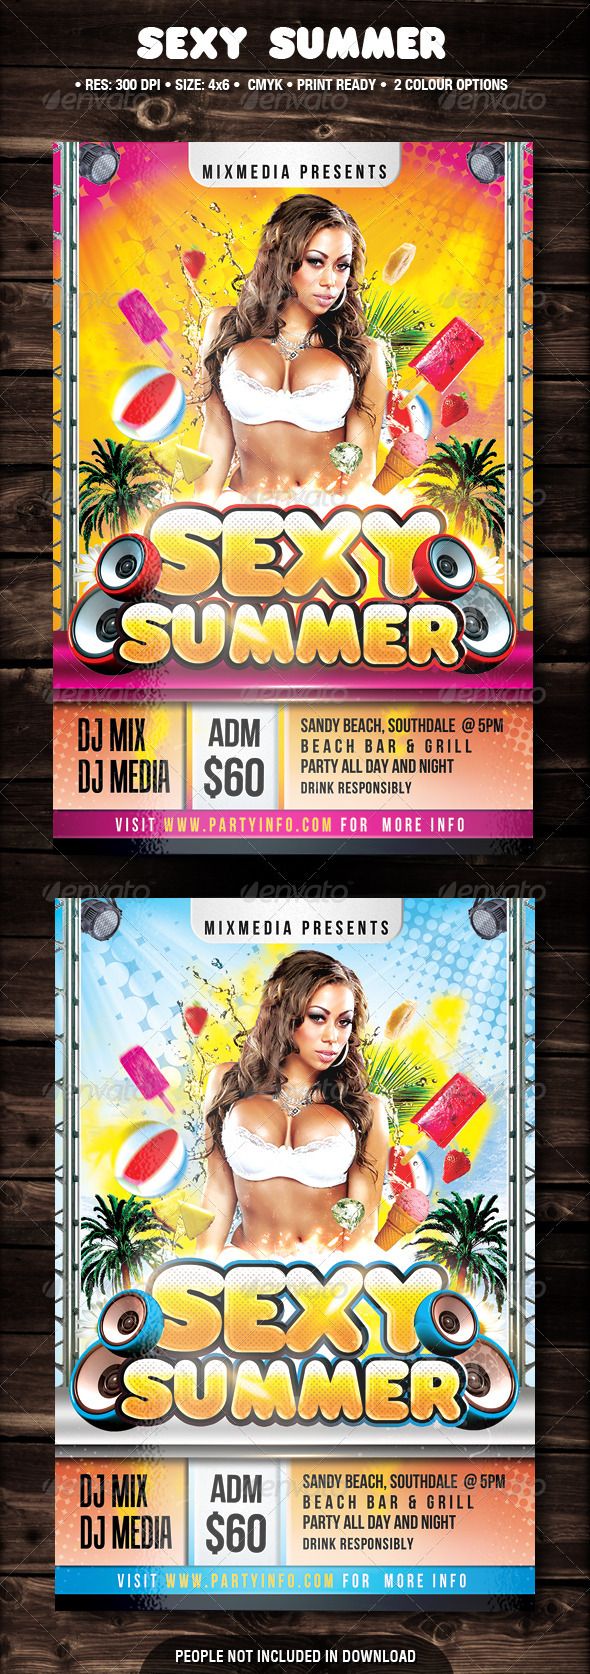 Sexy Summer Flyer - Flyers Print Templates